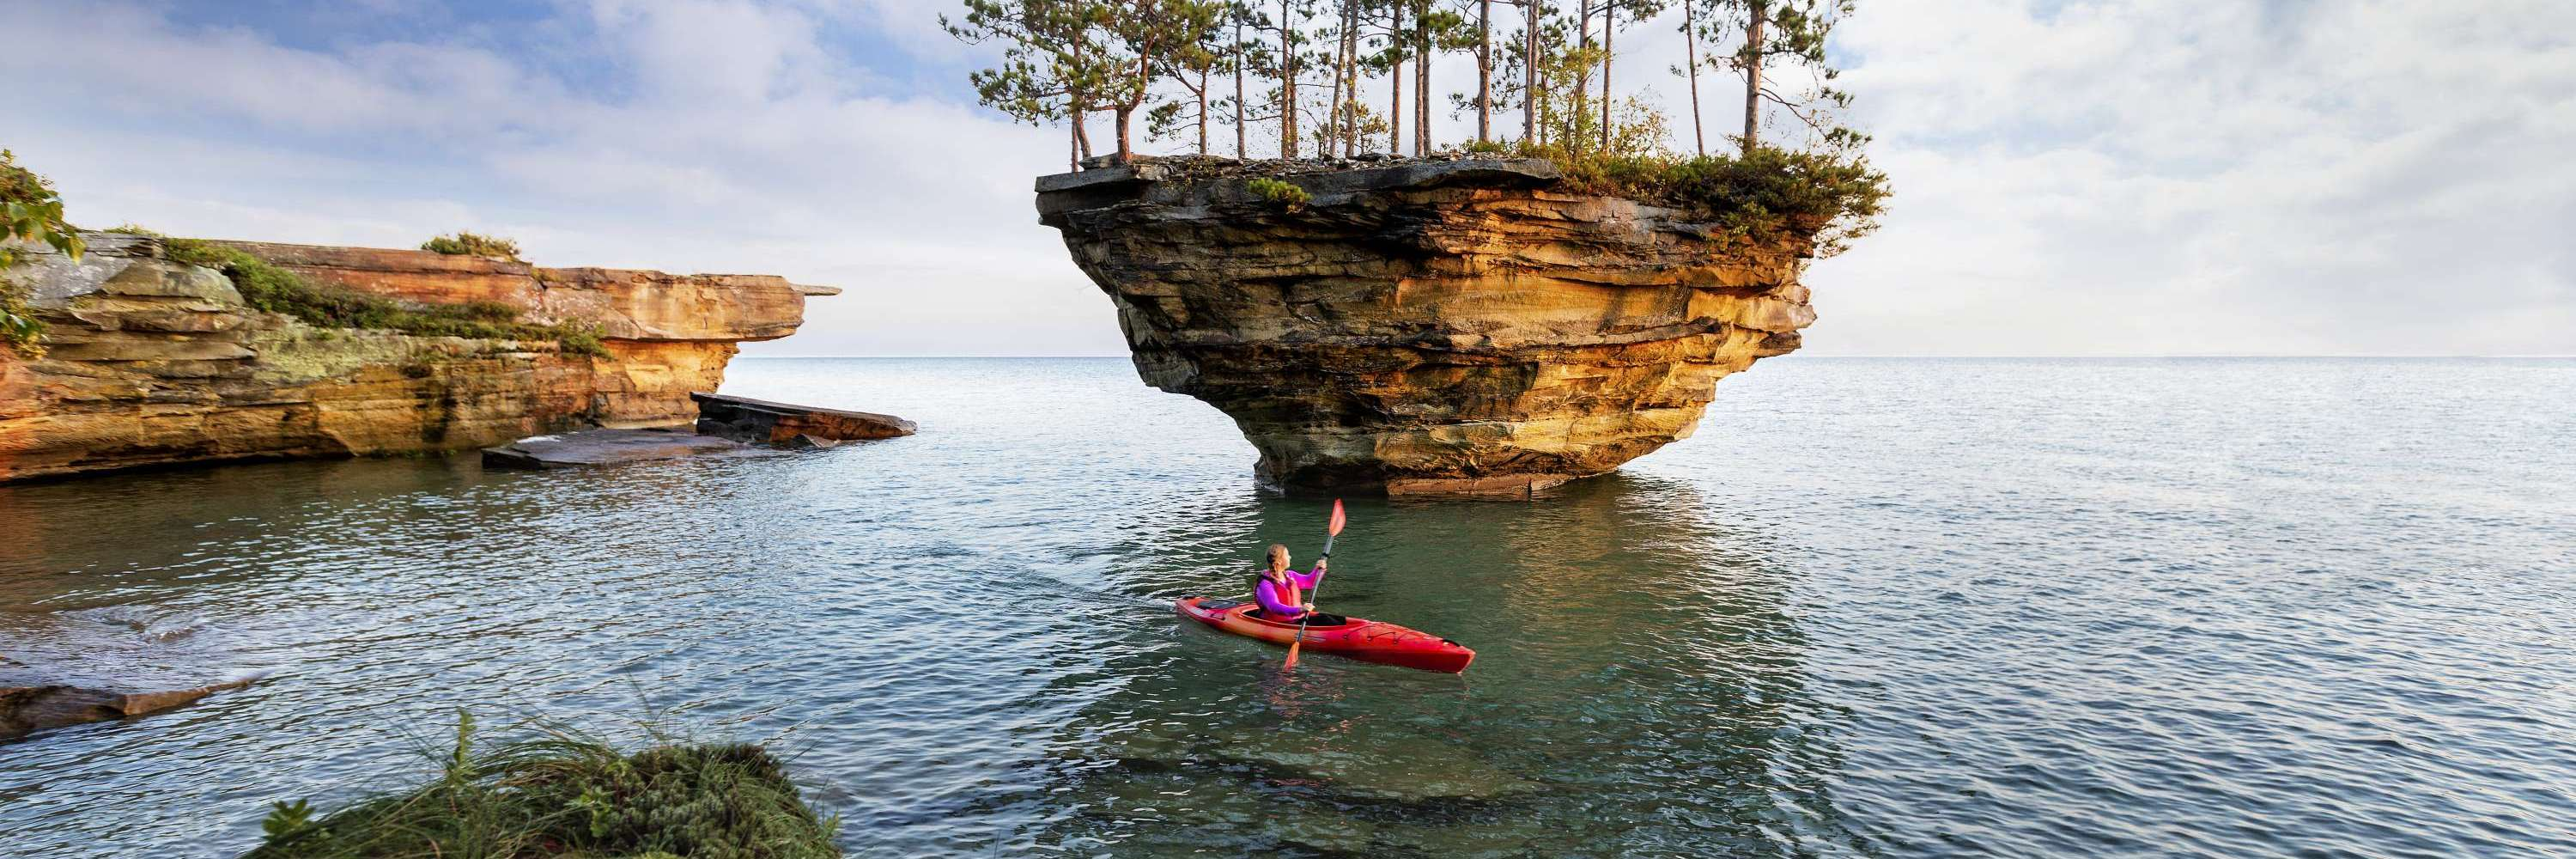 Kayaker by Turnip Rock